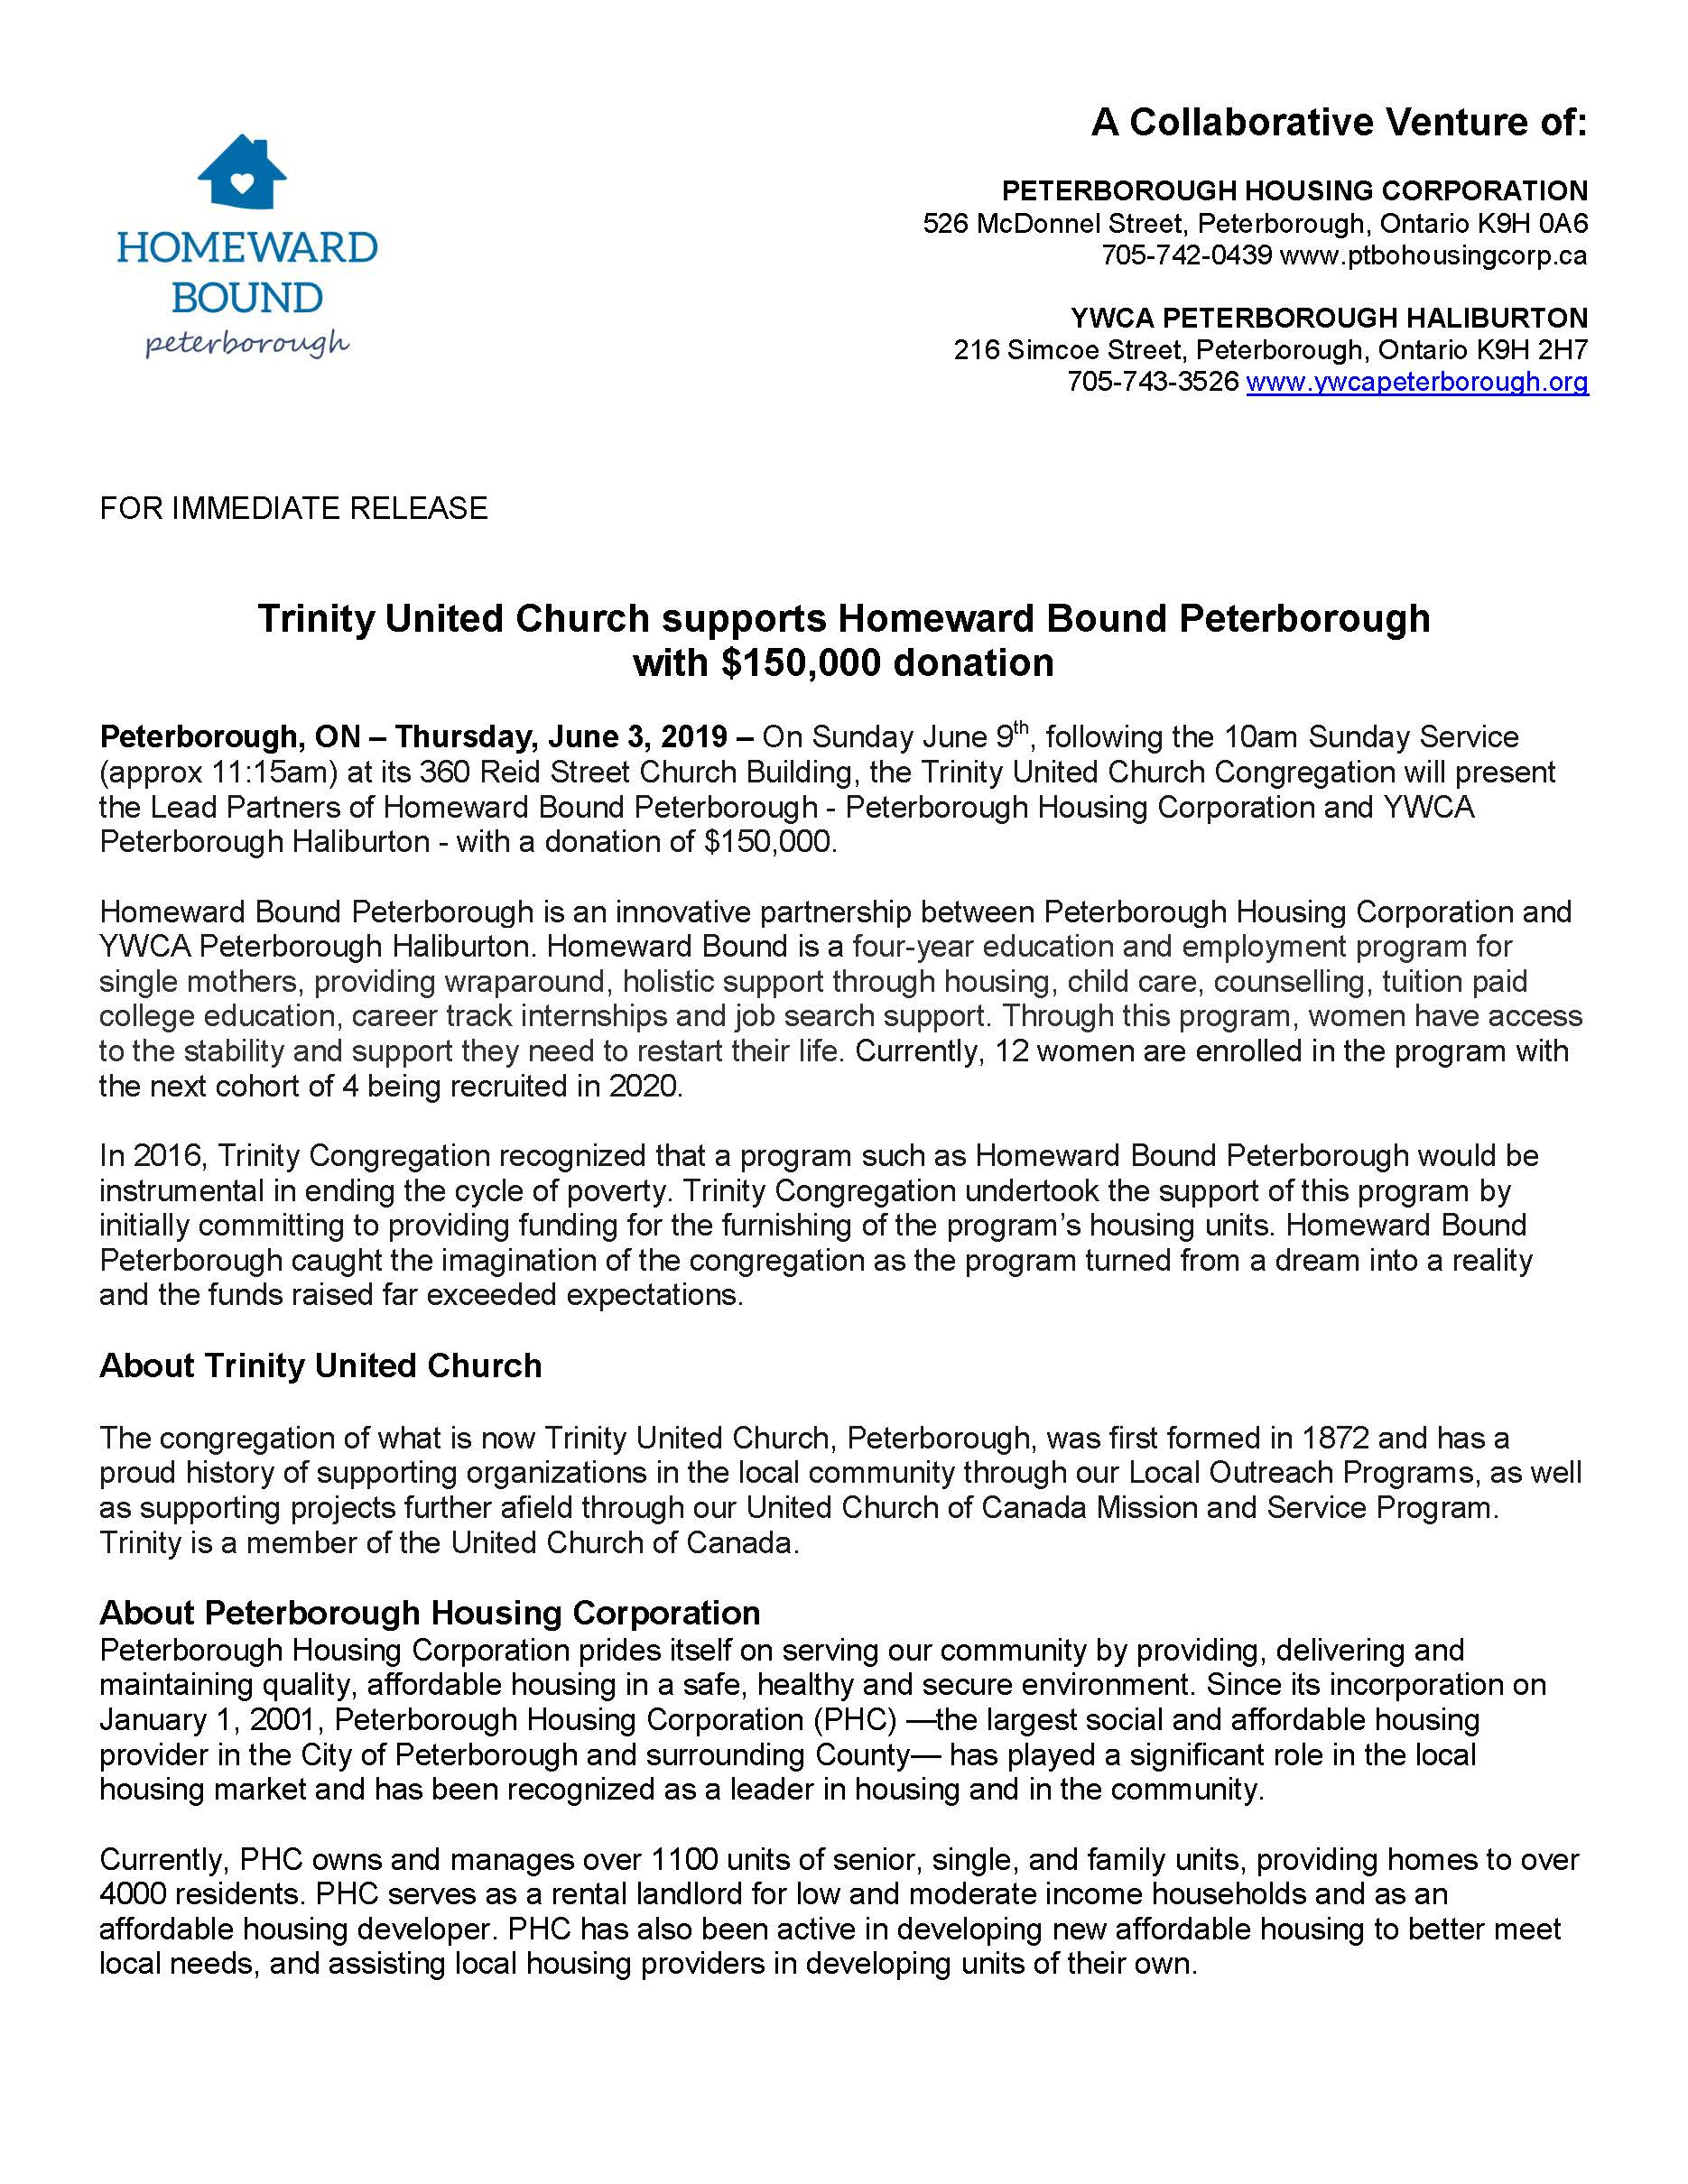 Media Release - Trinity United Church Supports Homeward Bound Peterborough Page 1